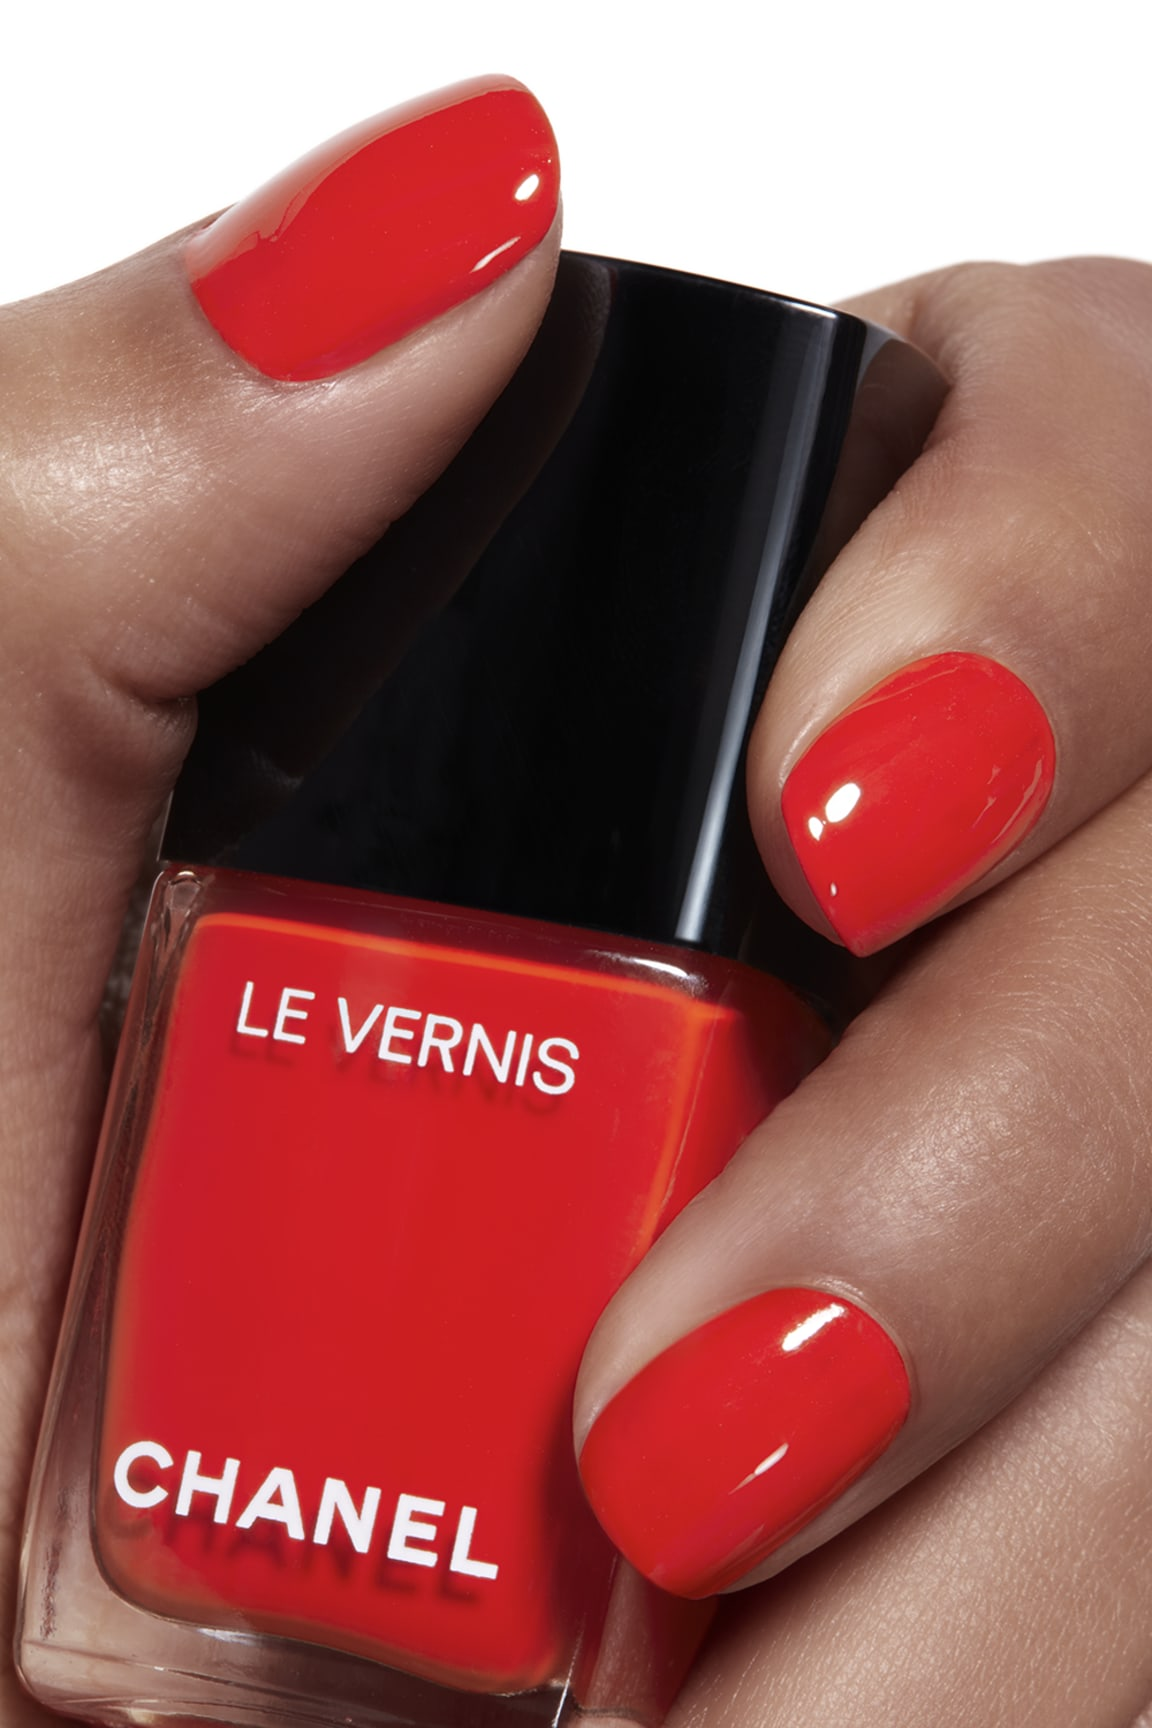 Application makeup visual 1 - LE VERNIS 634 - ARANCIO VIBRANTE